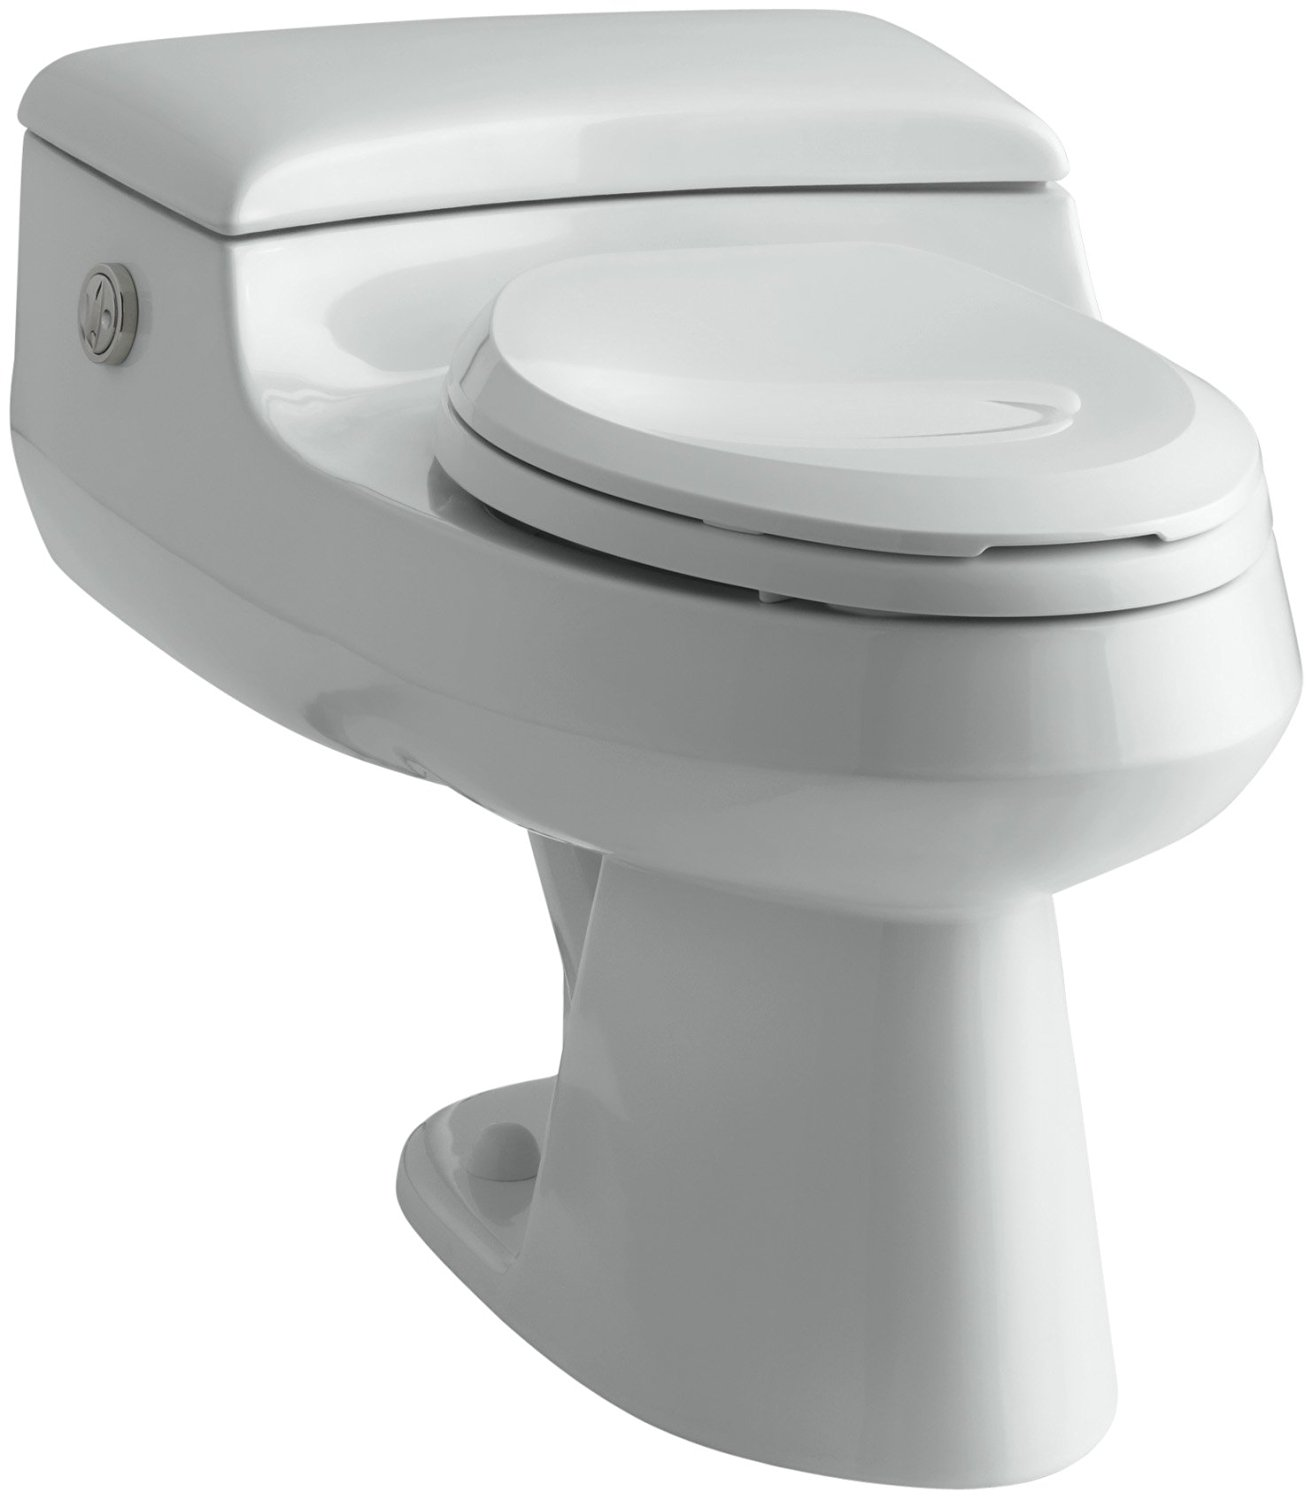 Wonderful Toilet Home Hardware 10 Inch Rough Kohler San Raphael Toilet Review Kohler Toilet Reviews 2018 Which Is Really Shop Toilet 10 Inch Rough Toilets Home Depot houzz-02 10 Inch Rough In Toilet